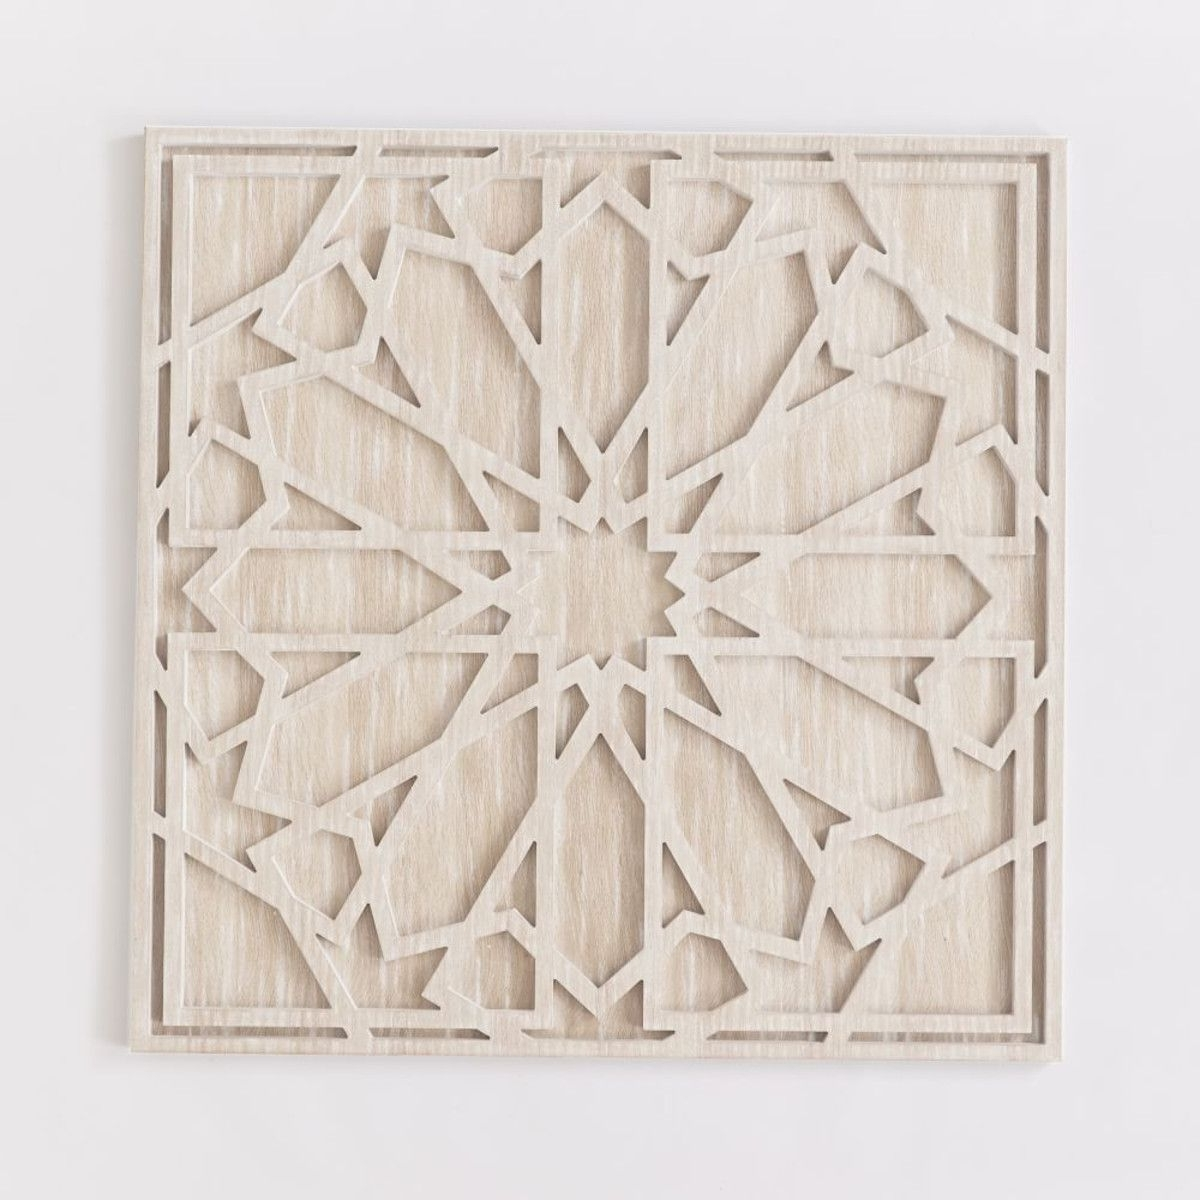 Newest West Elm Wall Art Throughout Appealing Art Carved Wood Wall Whitewashed West Elm Uk For Trend And (View 16 of 20)